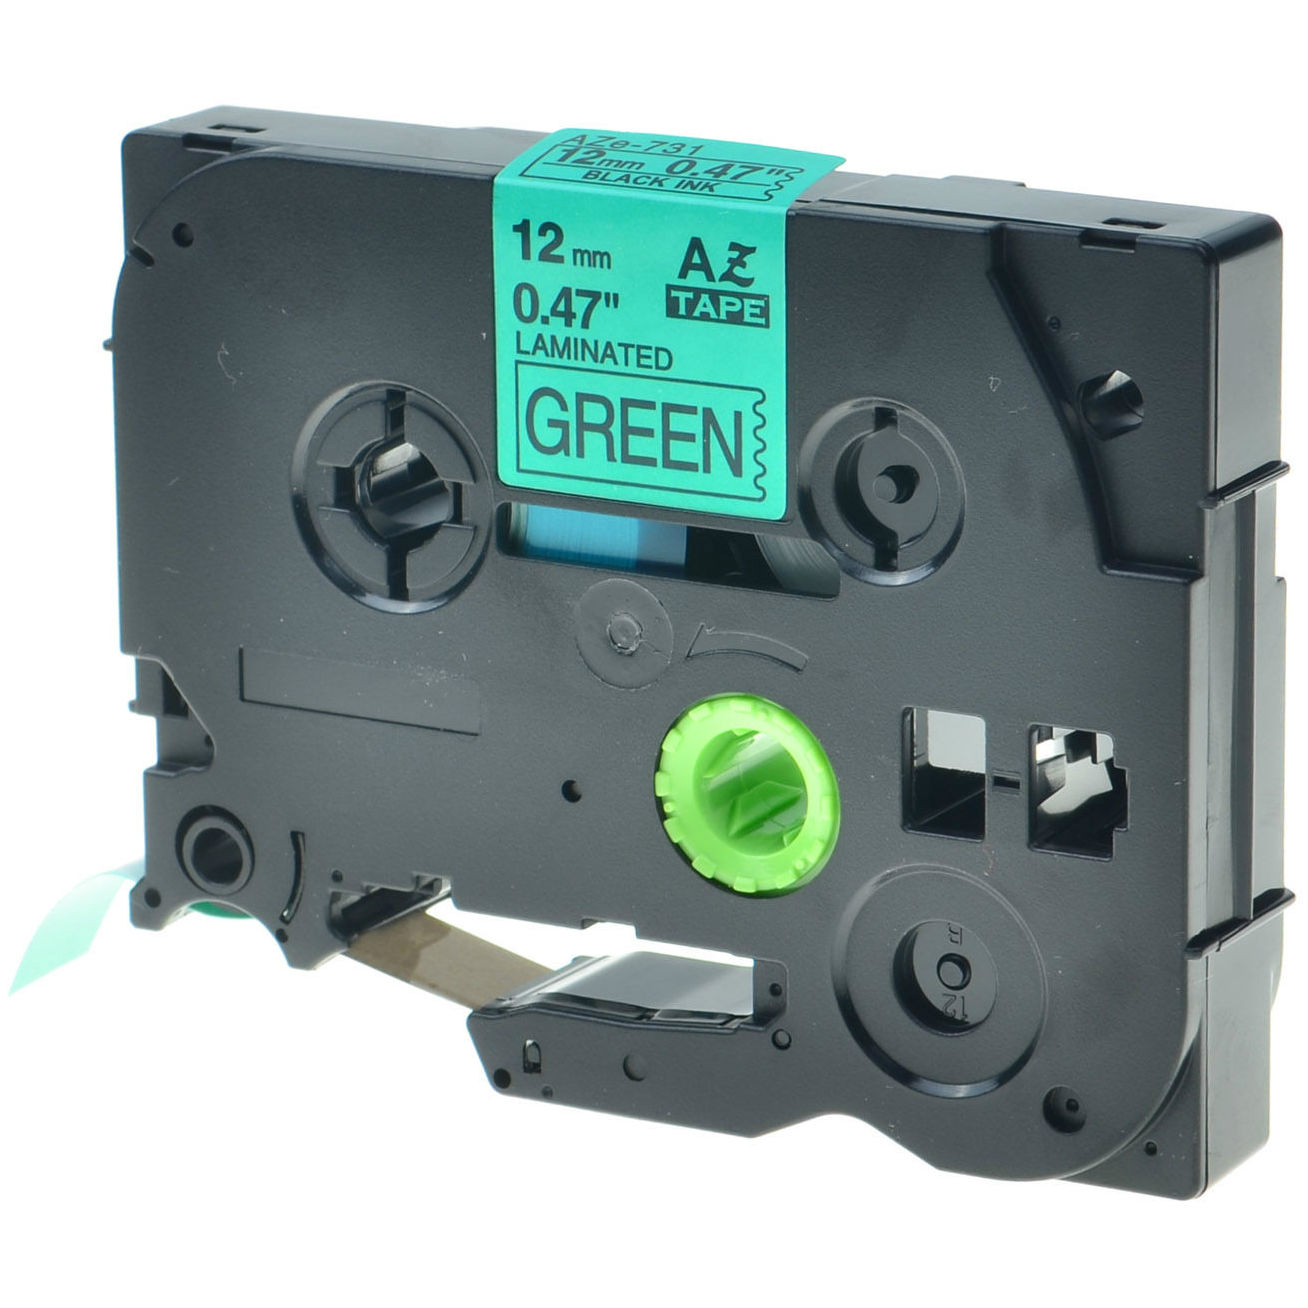 Original Brother TX-731 Black On Green 12mm x 15m Laminated P-Touch Label Tape (TX731)